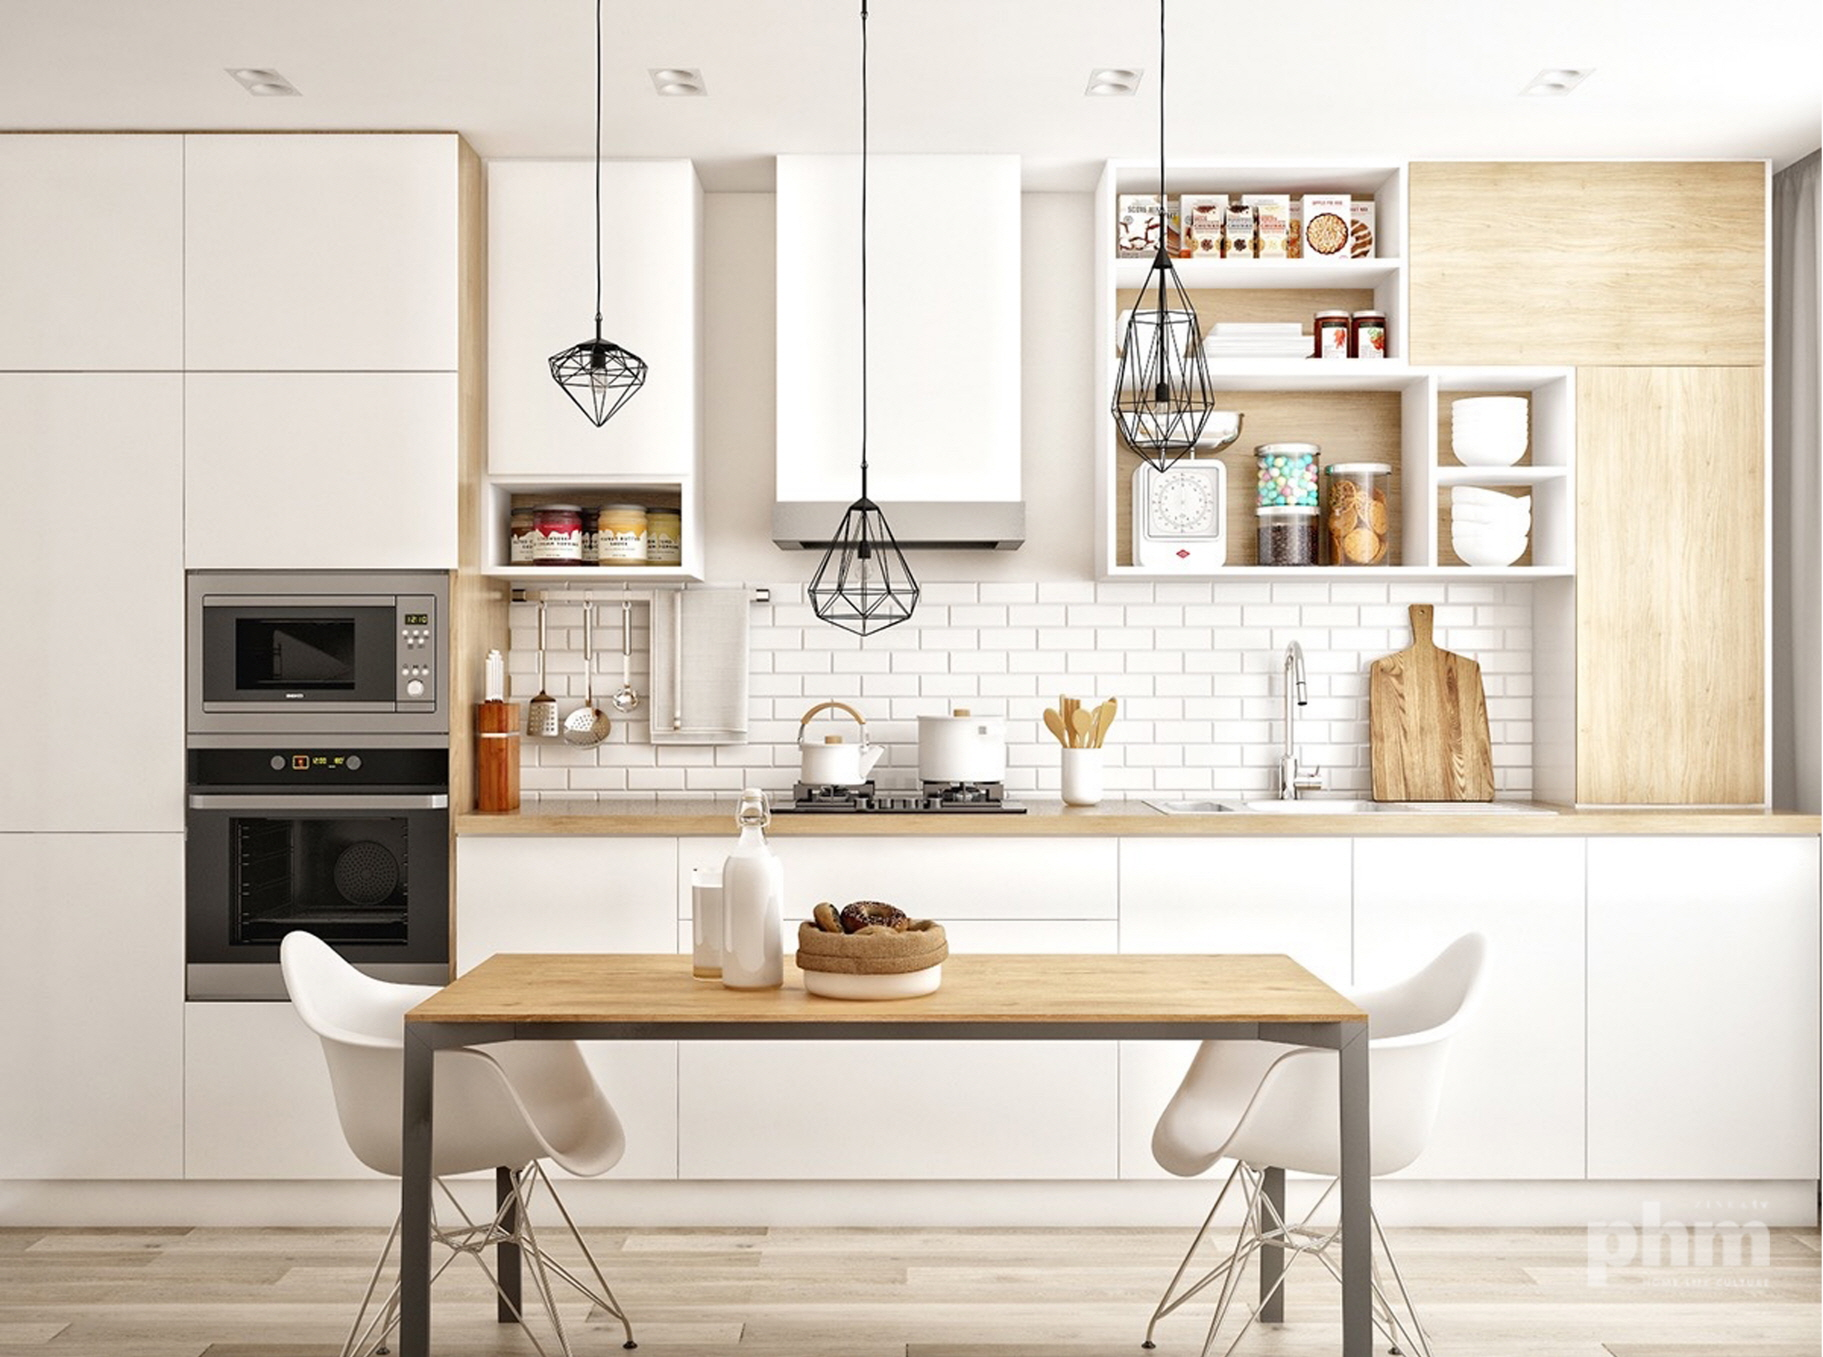 Design Kitchen Set Minimalis Modern 7 Tips Simpel Menata Kitchen Set Minimalis Kurang Dari 1 Jam